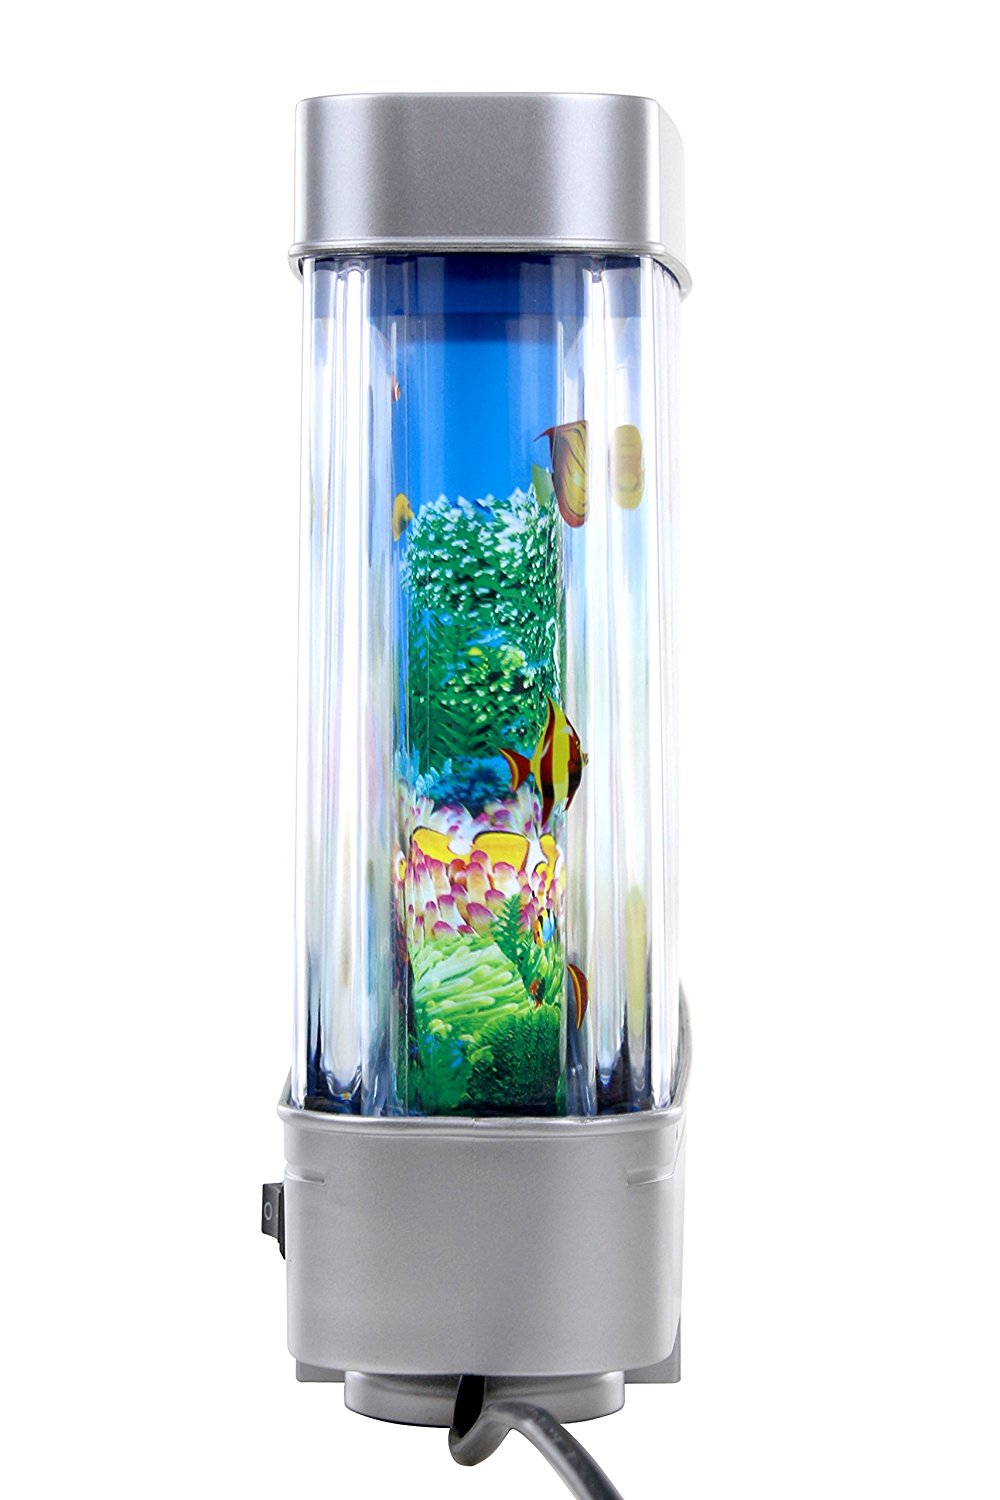 Lightahead Artificial Tropical Fish Aquarium Decorative Lamp Virtual ...